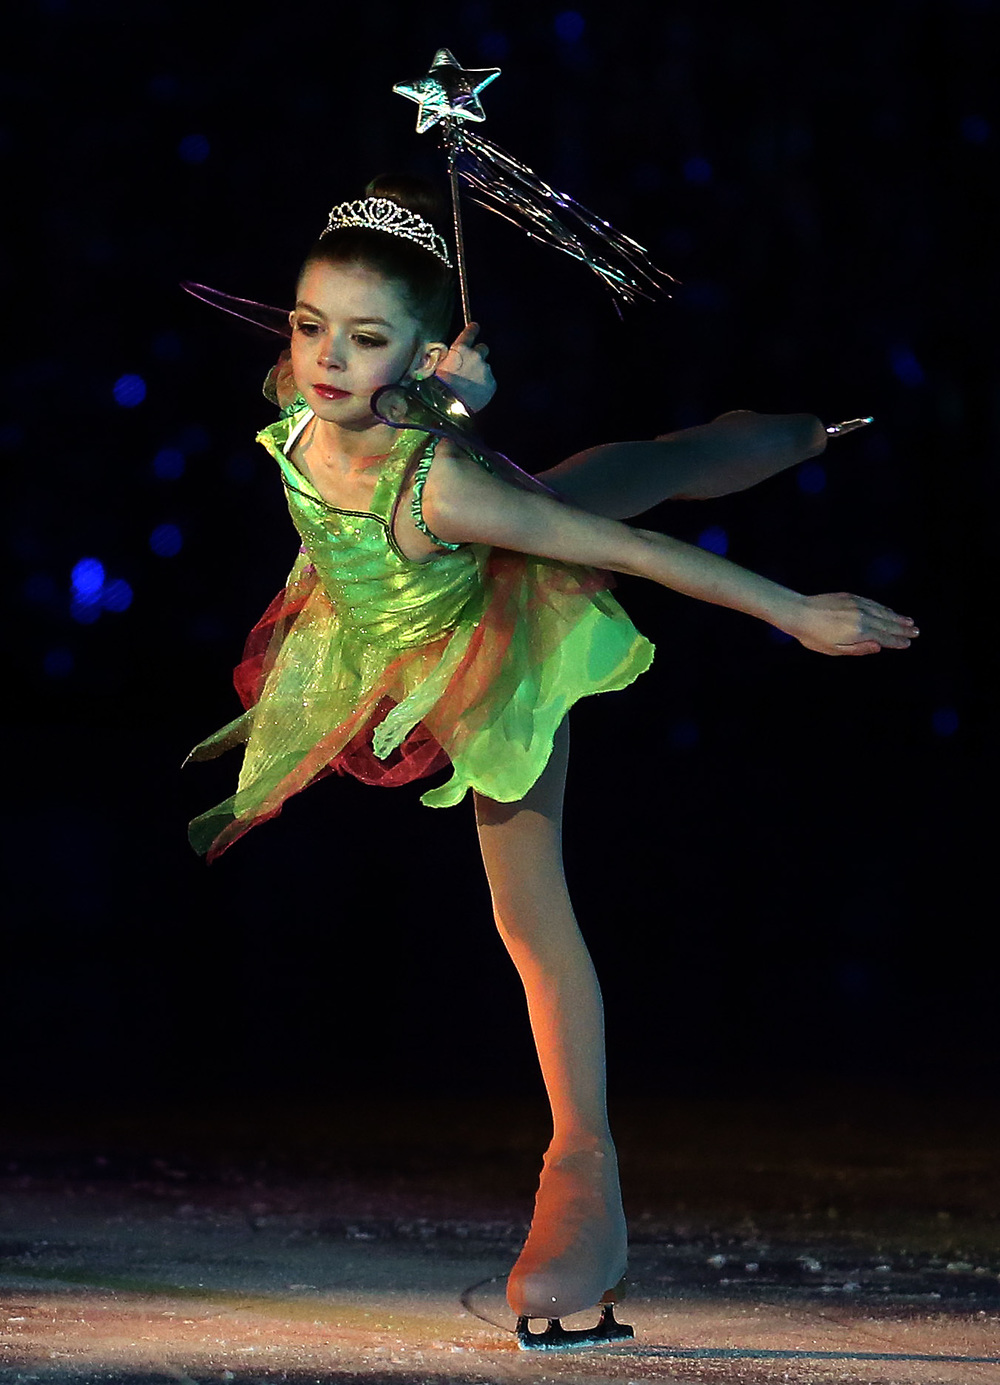 Tinker Bell was performed by skater Camrey Hedges during the Peter Pan segment at Saturday's matinee performance. David Spencer/The State Journal Register